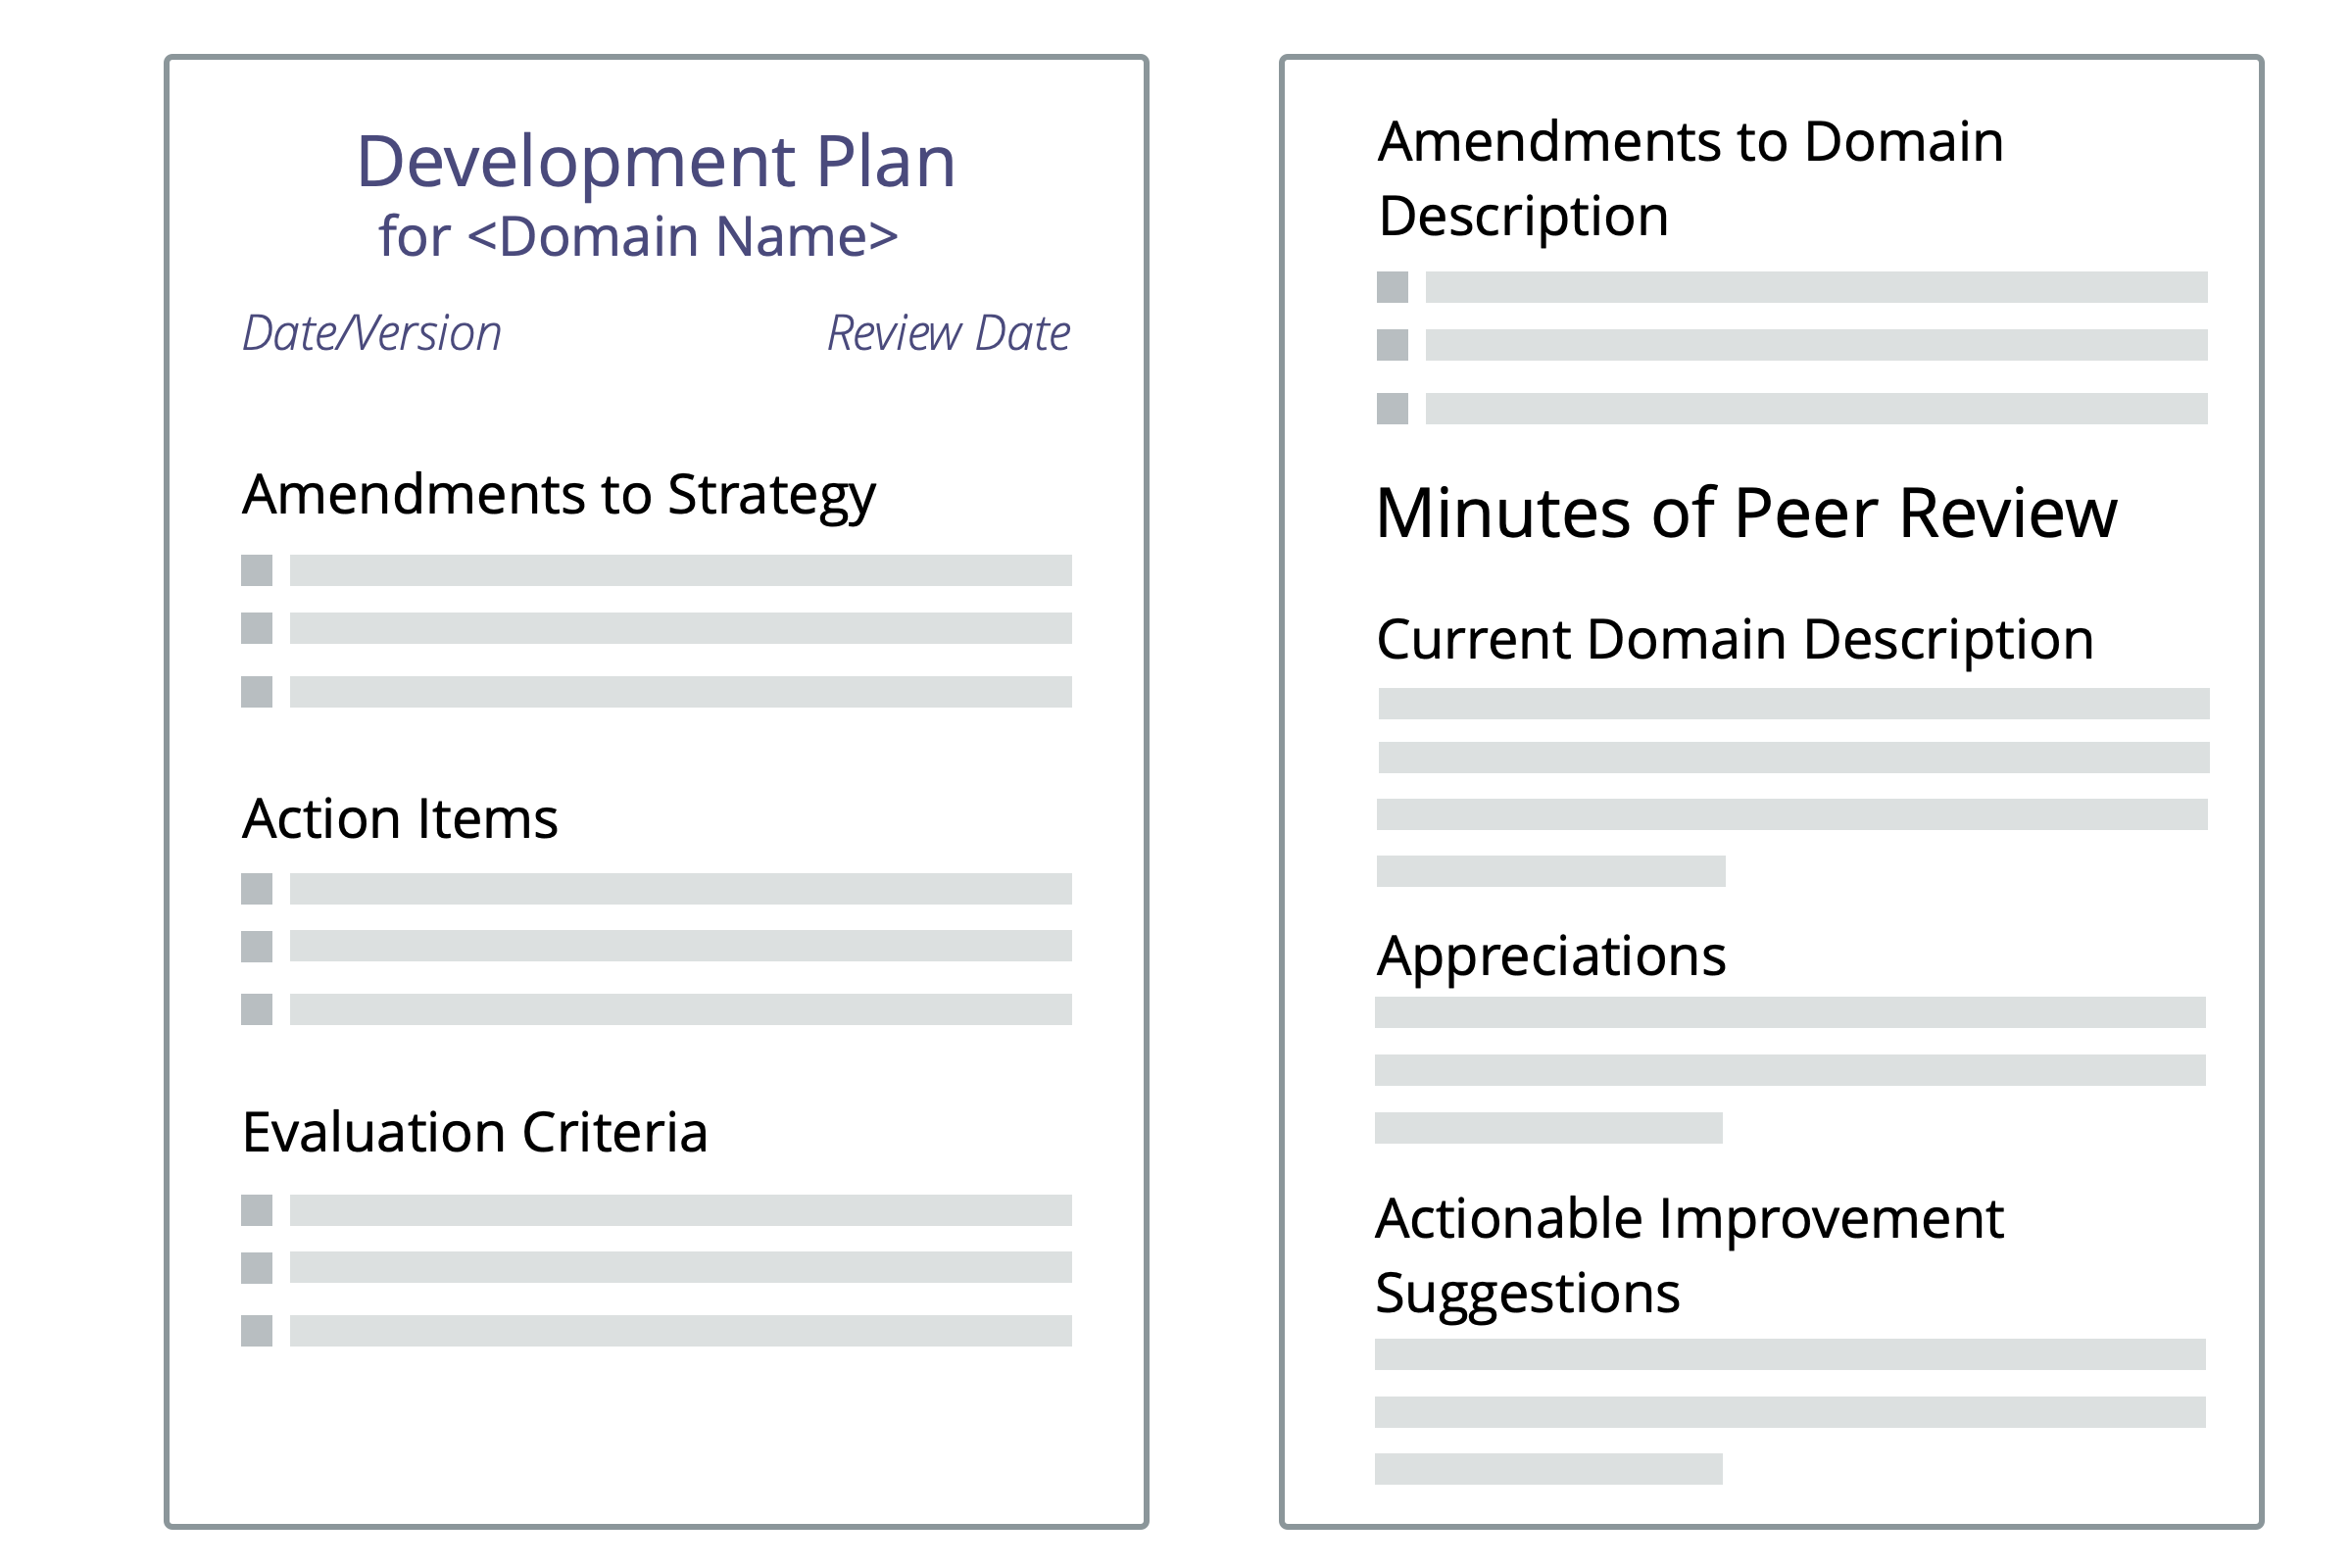 A template for development plans